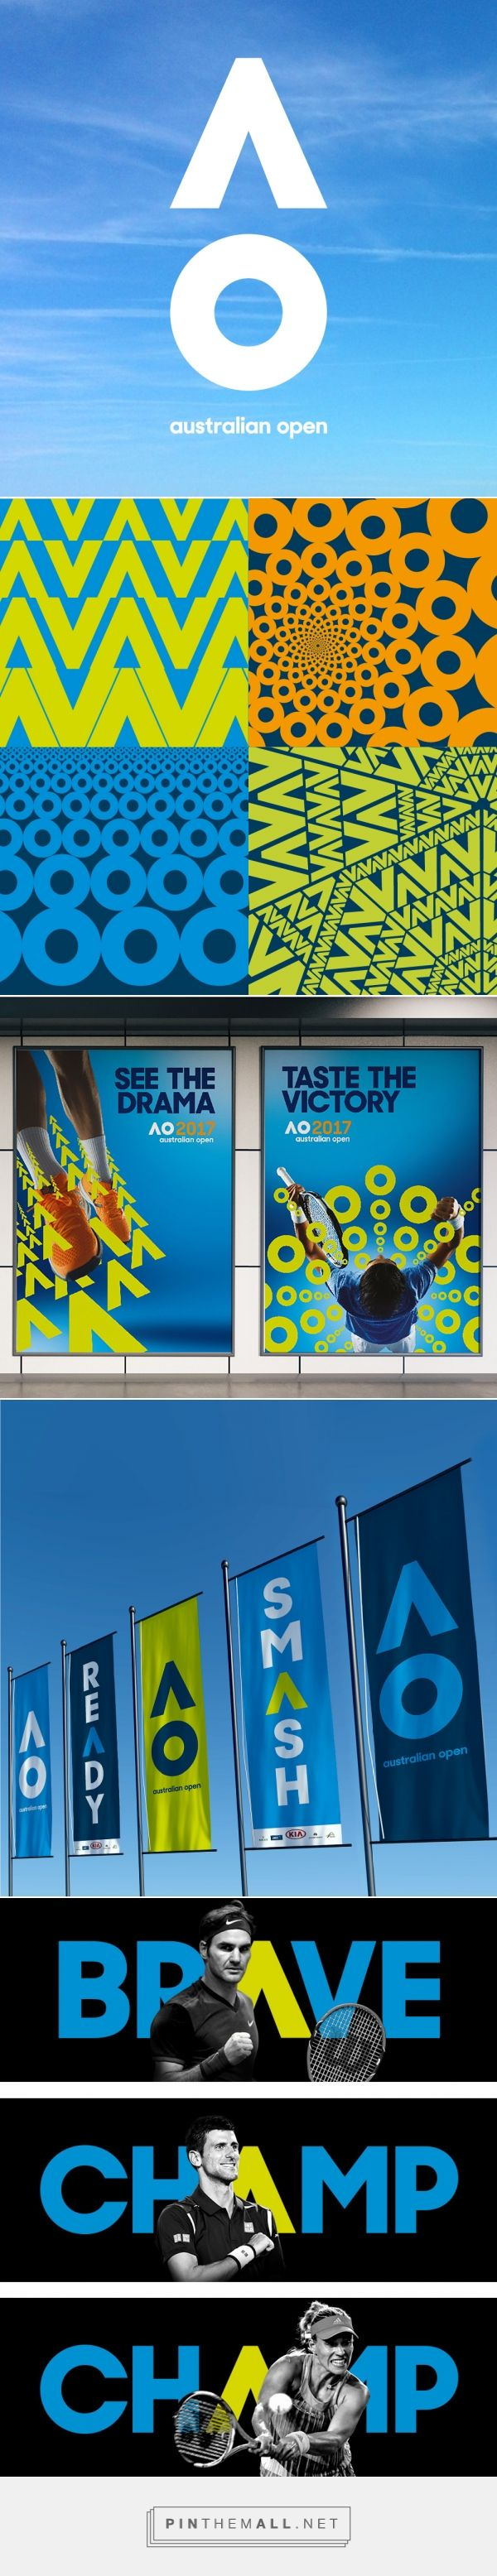 Brand New: New Logo and Identity for Australian Open by Landor Australia... - a grouped images picture - Pin Them All